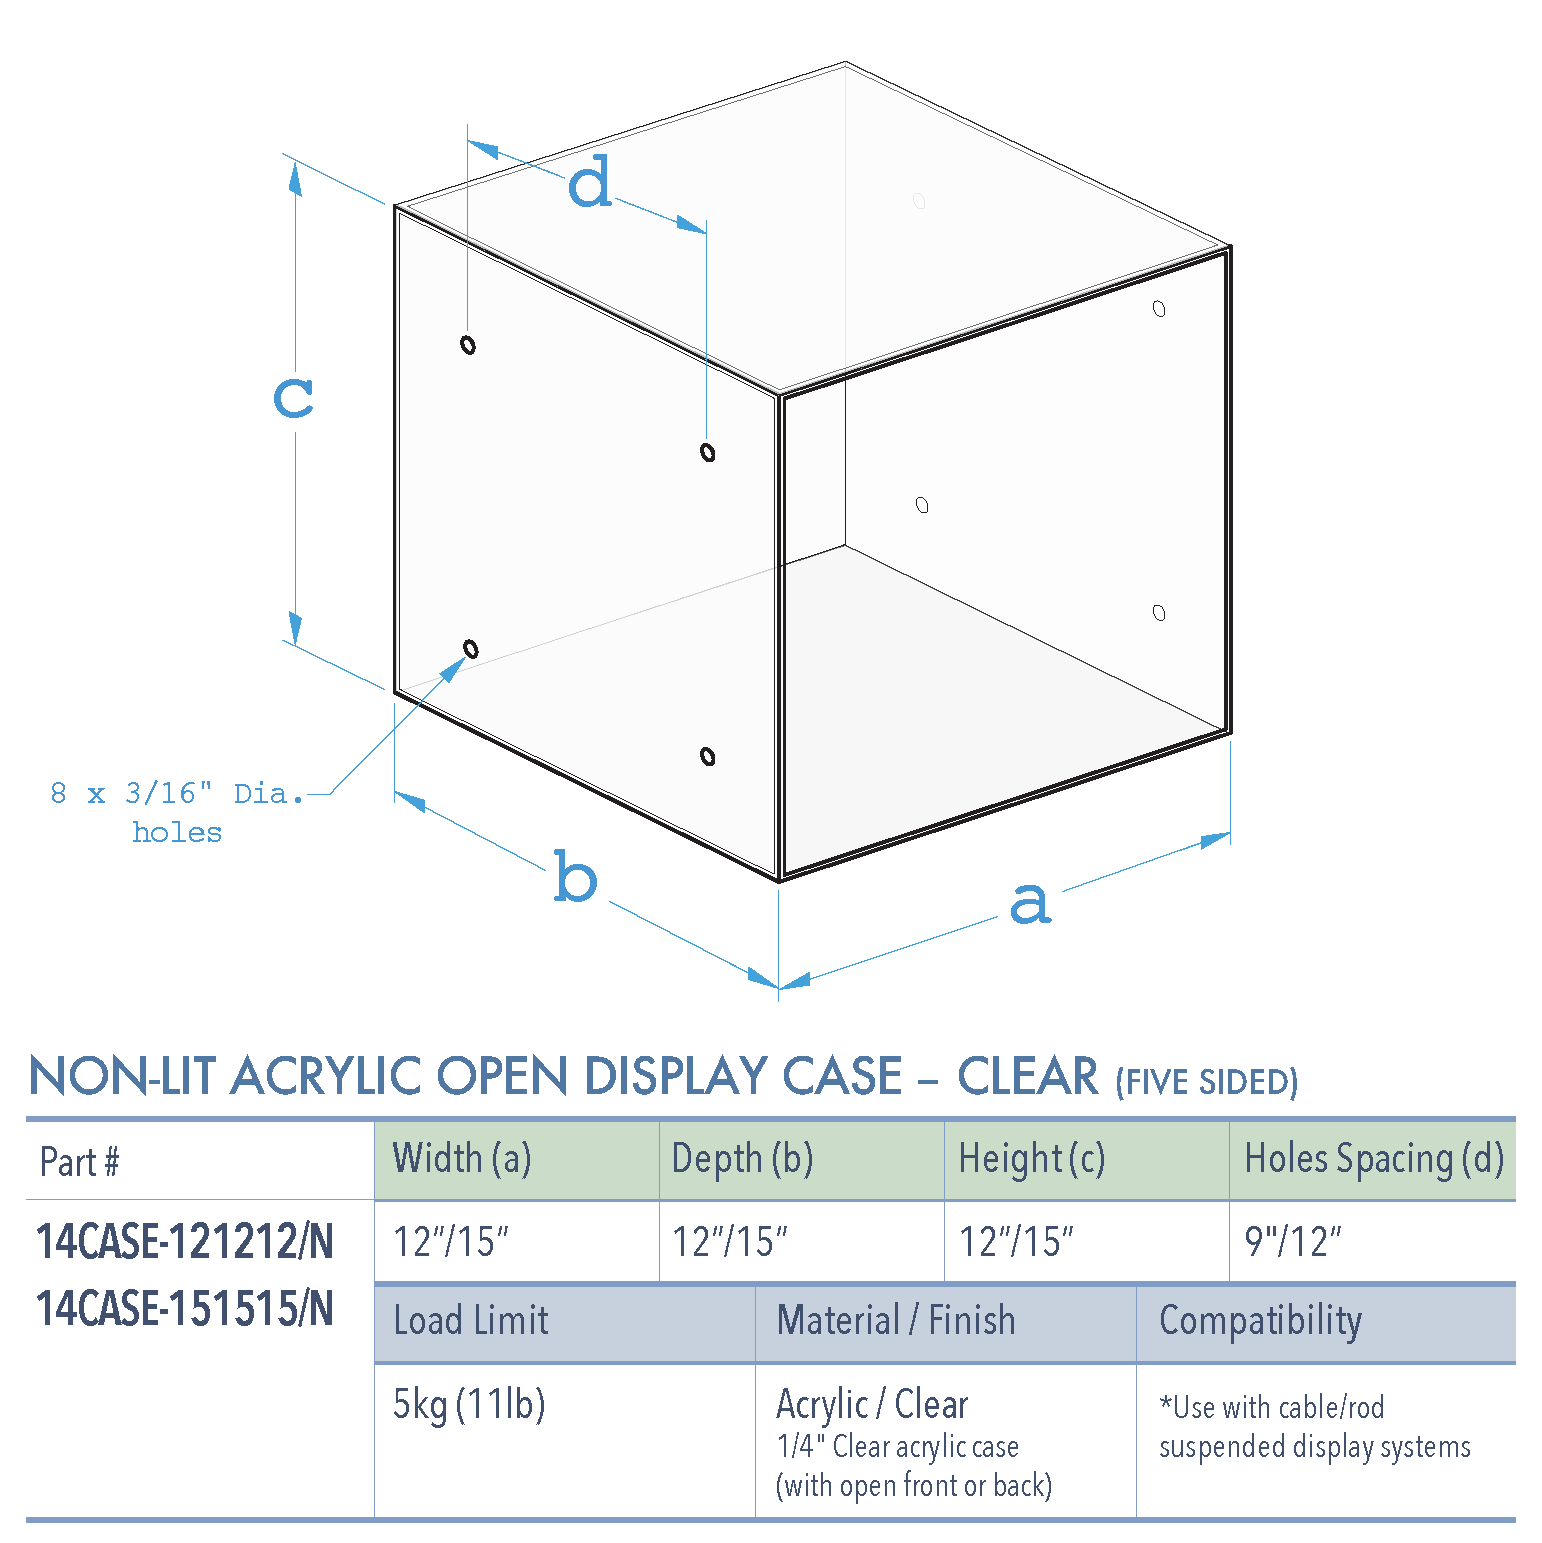 Specifications for 14CASE-CLEAR-OPEN